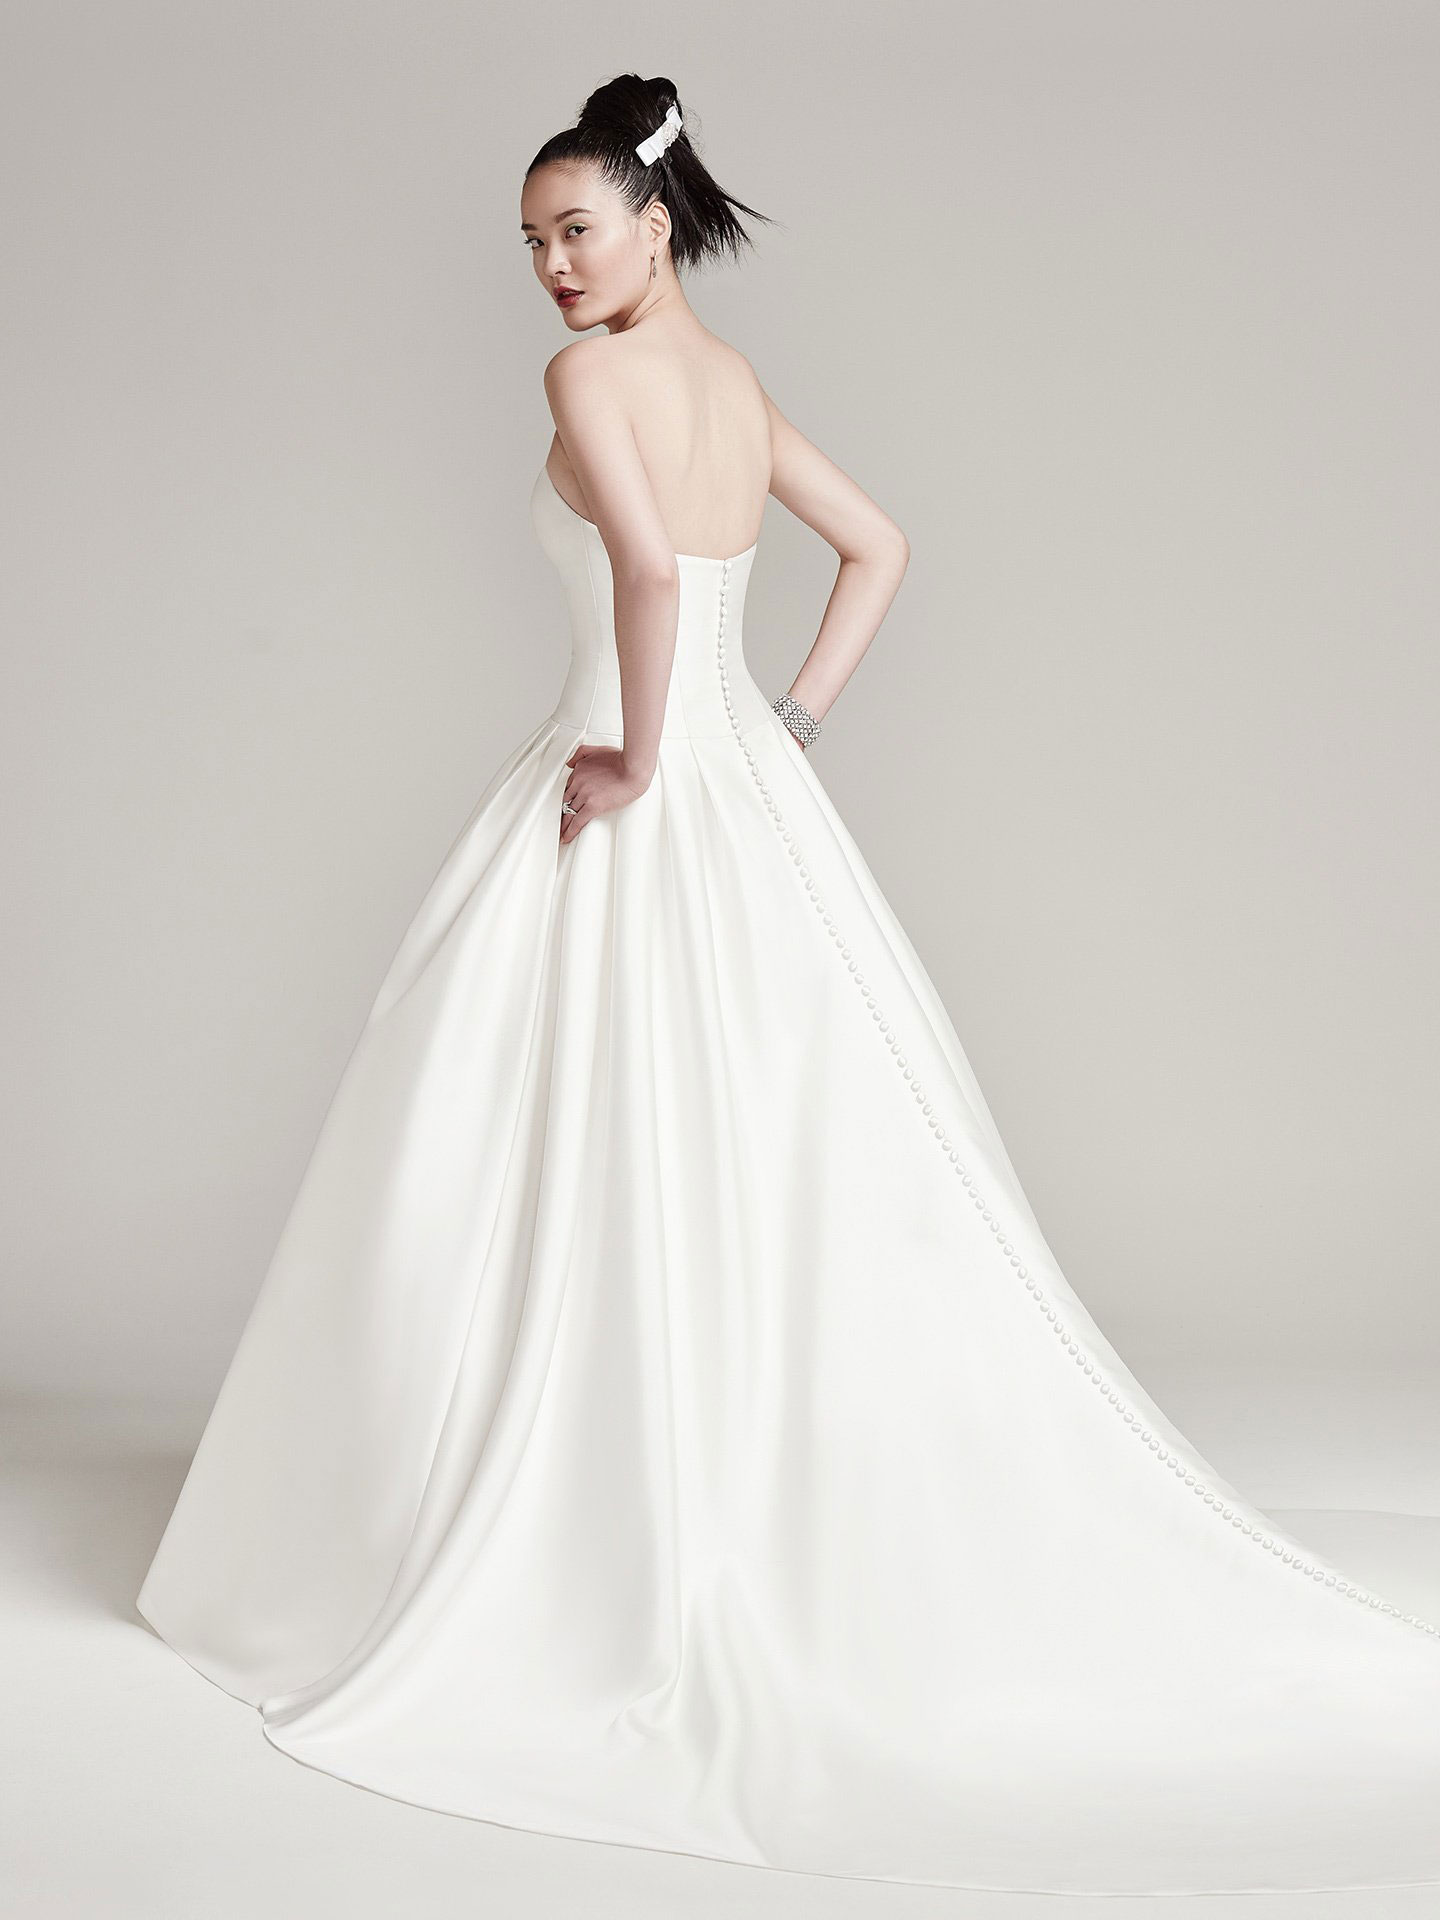 Sottero &#038; Midgley<br>Prestyn<br>Size 12 Was £1,170 Now £650